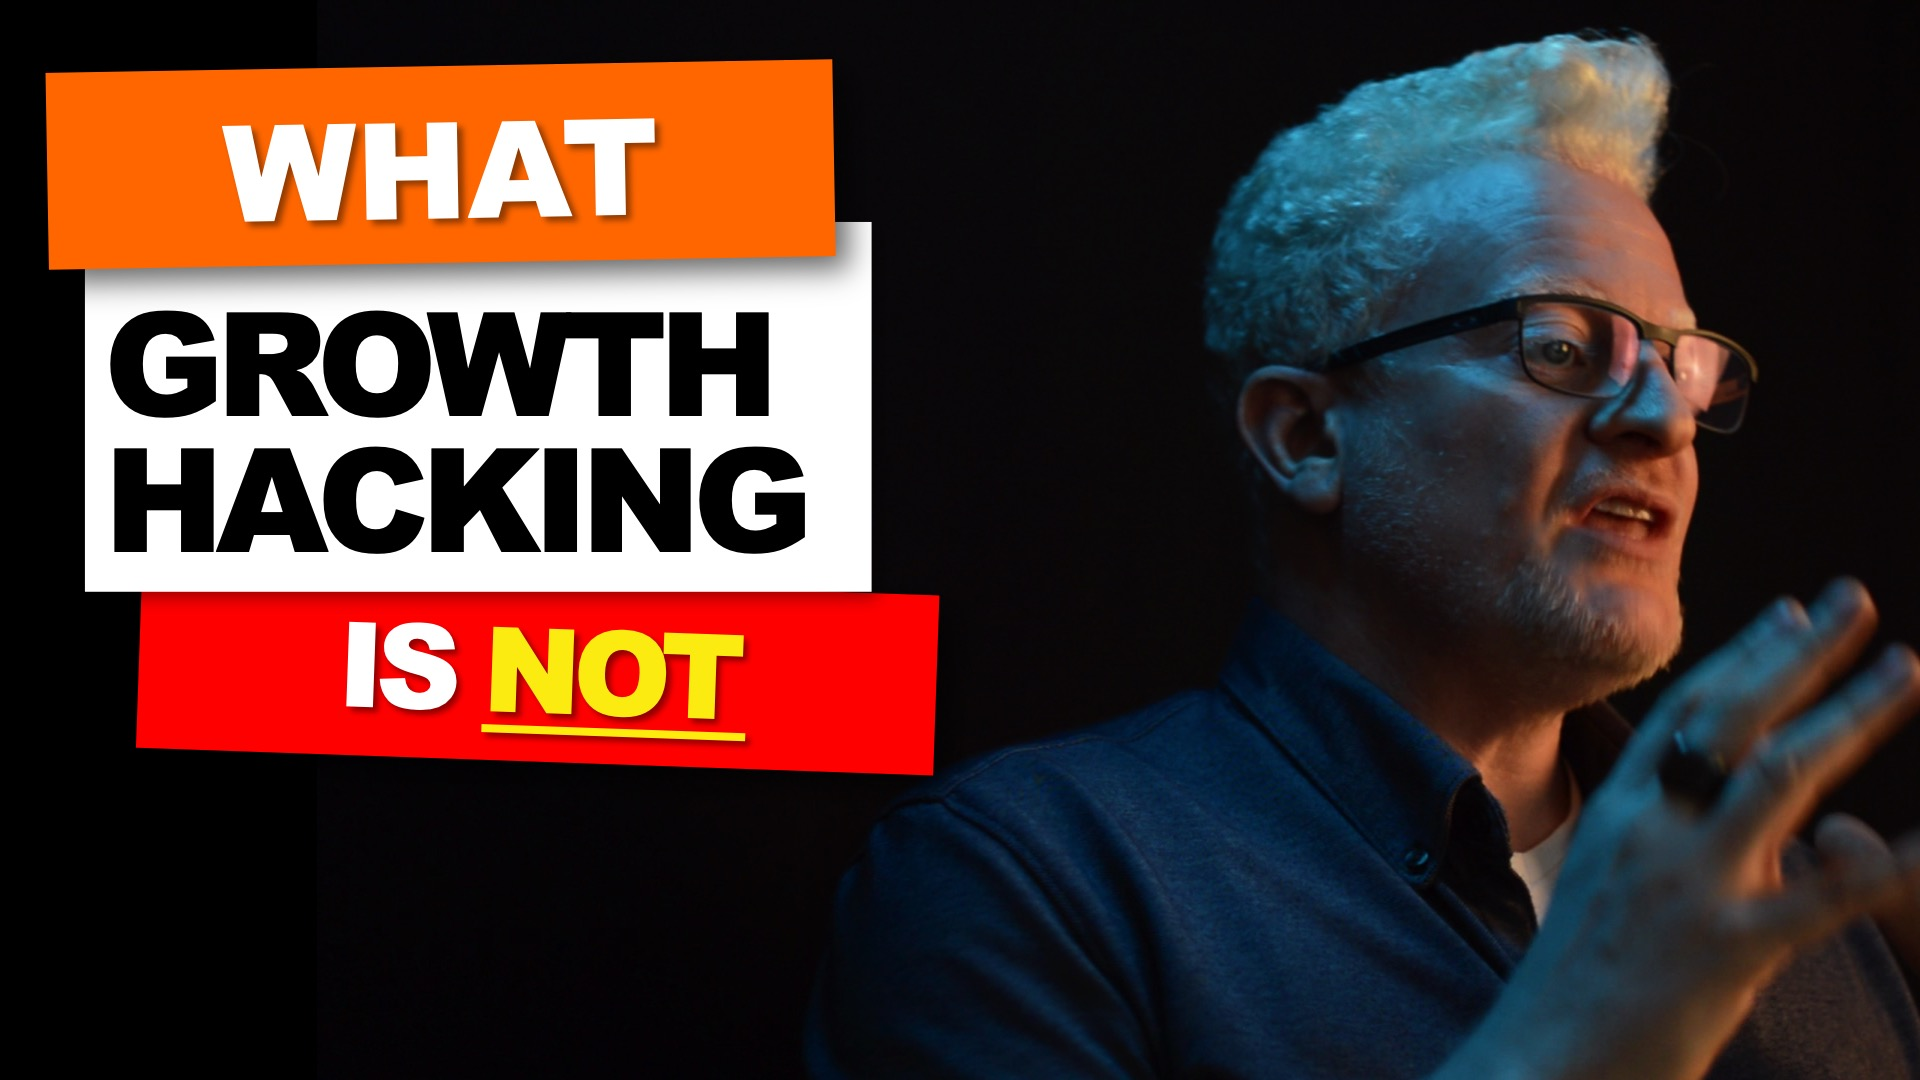 What growth hacking is not